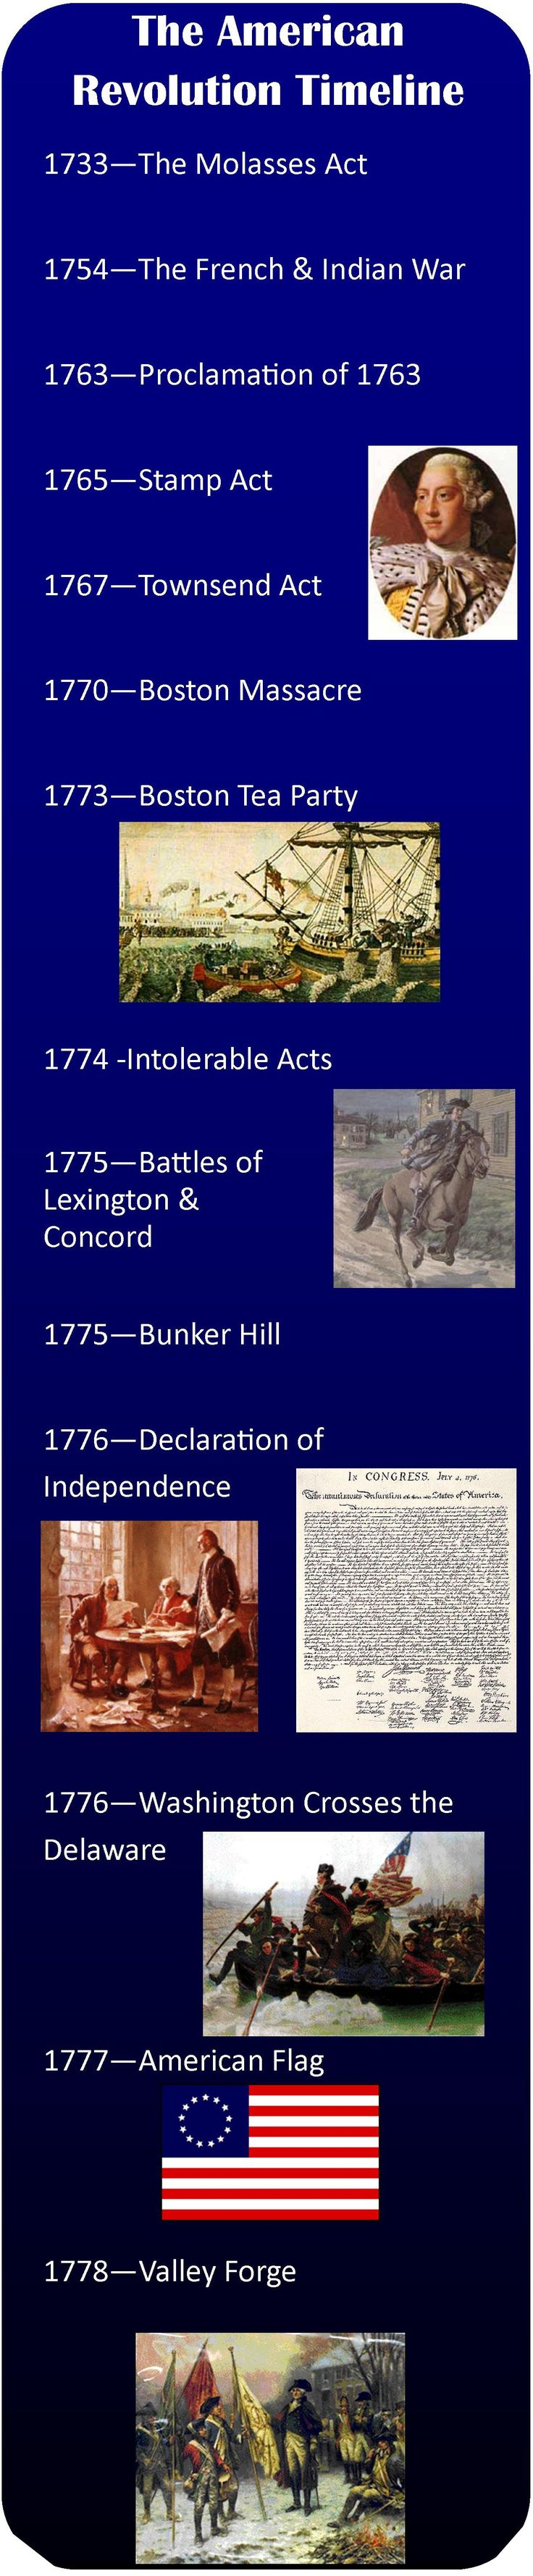 a look at the events leading to the american revolution American revolution essays, timelines & images select essays, timelines and images from the list of colonial america and  events leading to the american revolution.